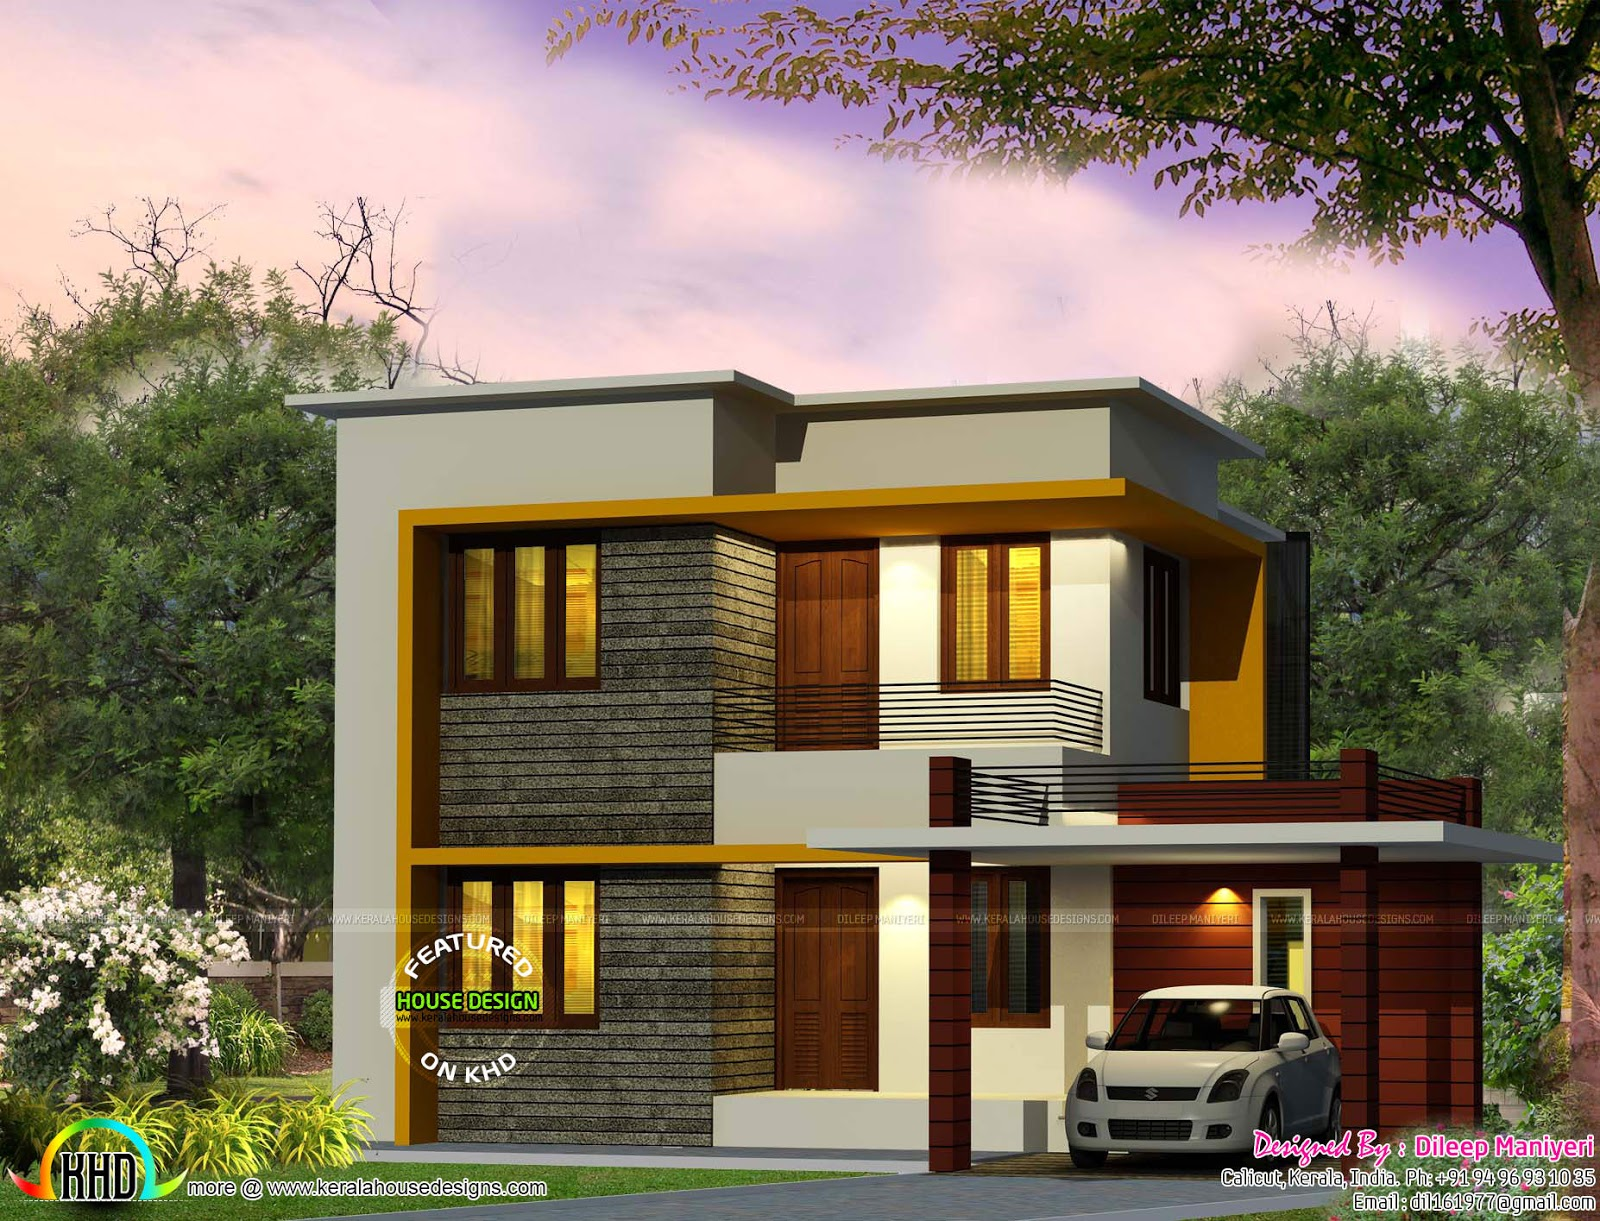 Cute 4 bedroom modern house 1670 sq ft kerala home design and floor plans 4 bedroom modern house plans